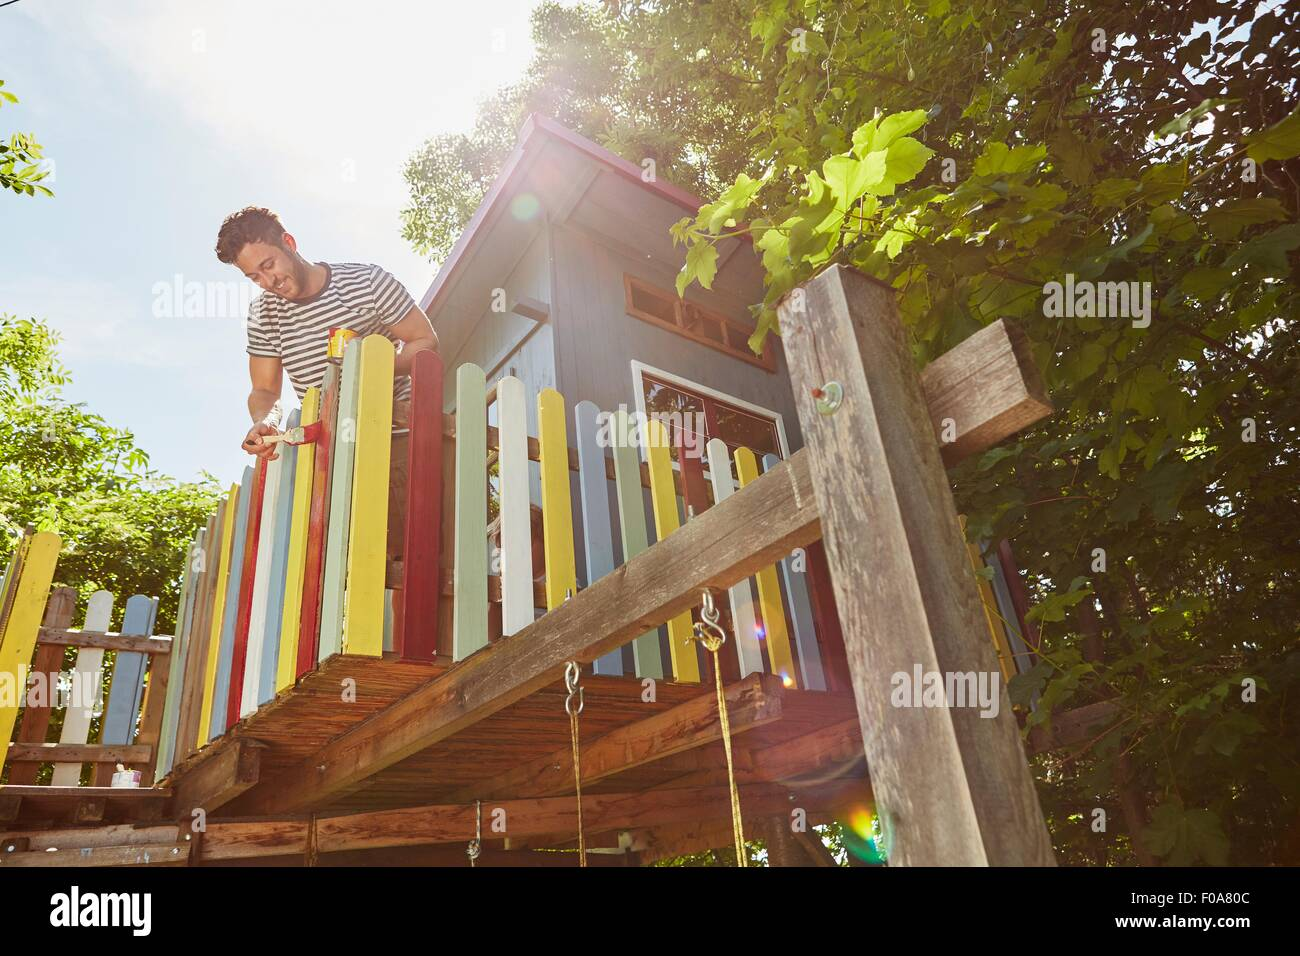 Jeune homme peinture tree house, low angle view Photo Stock